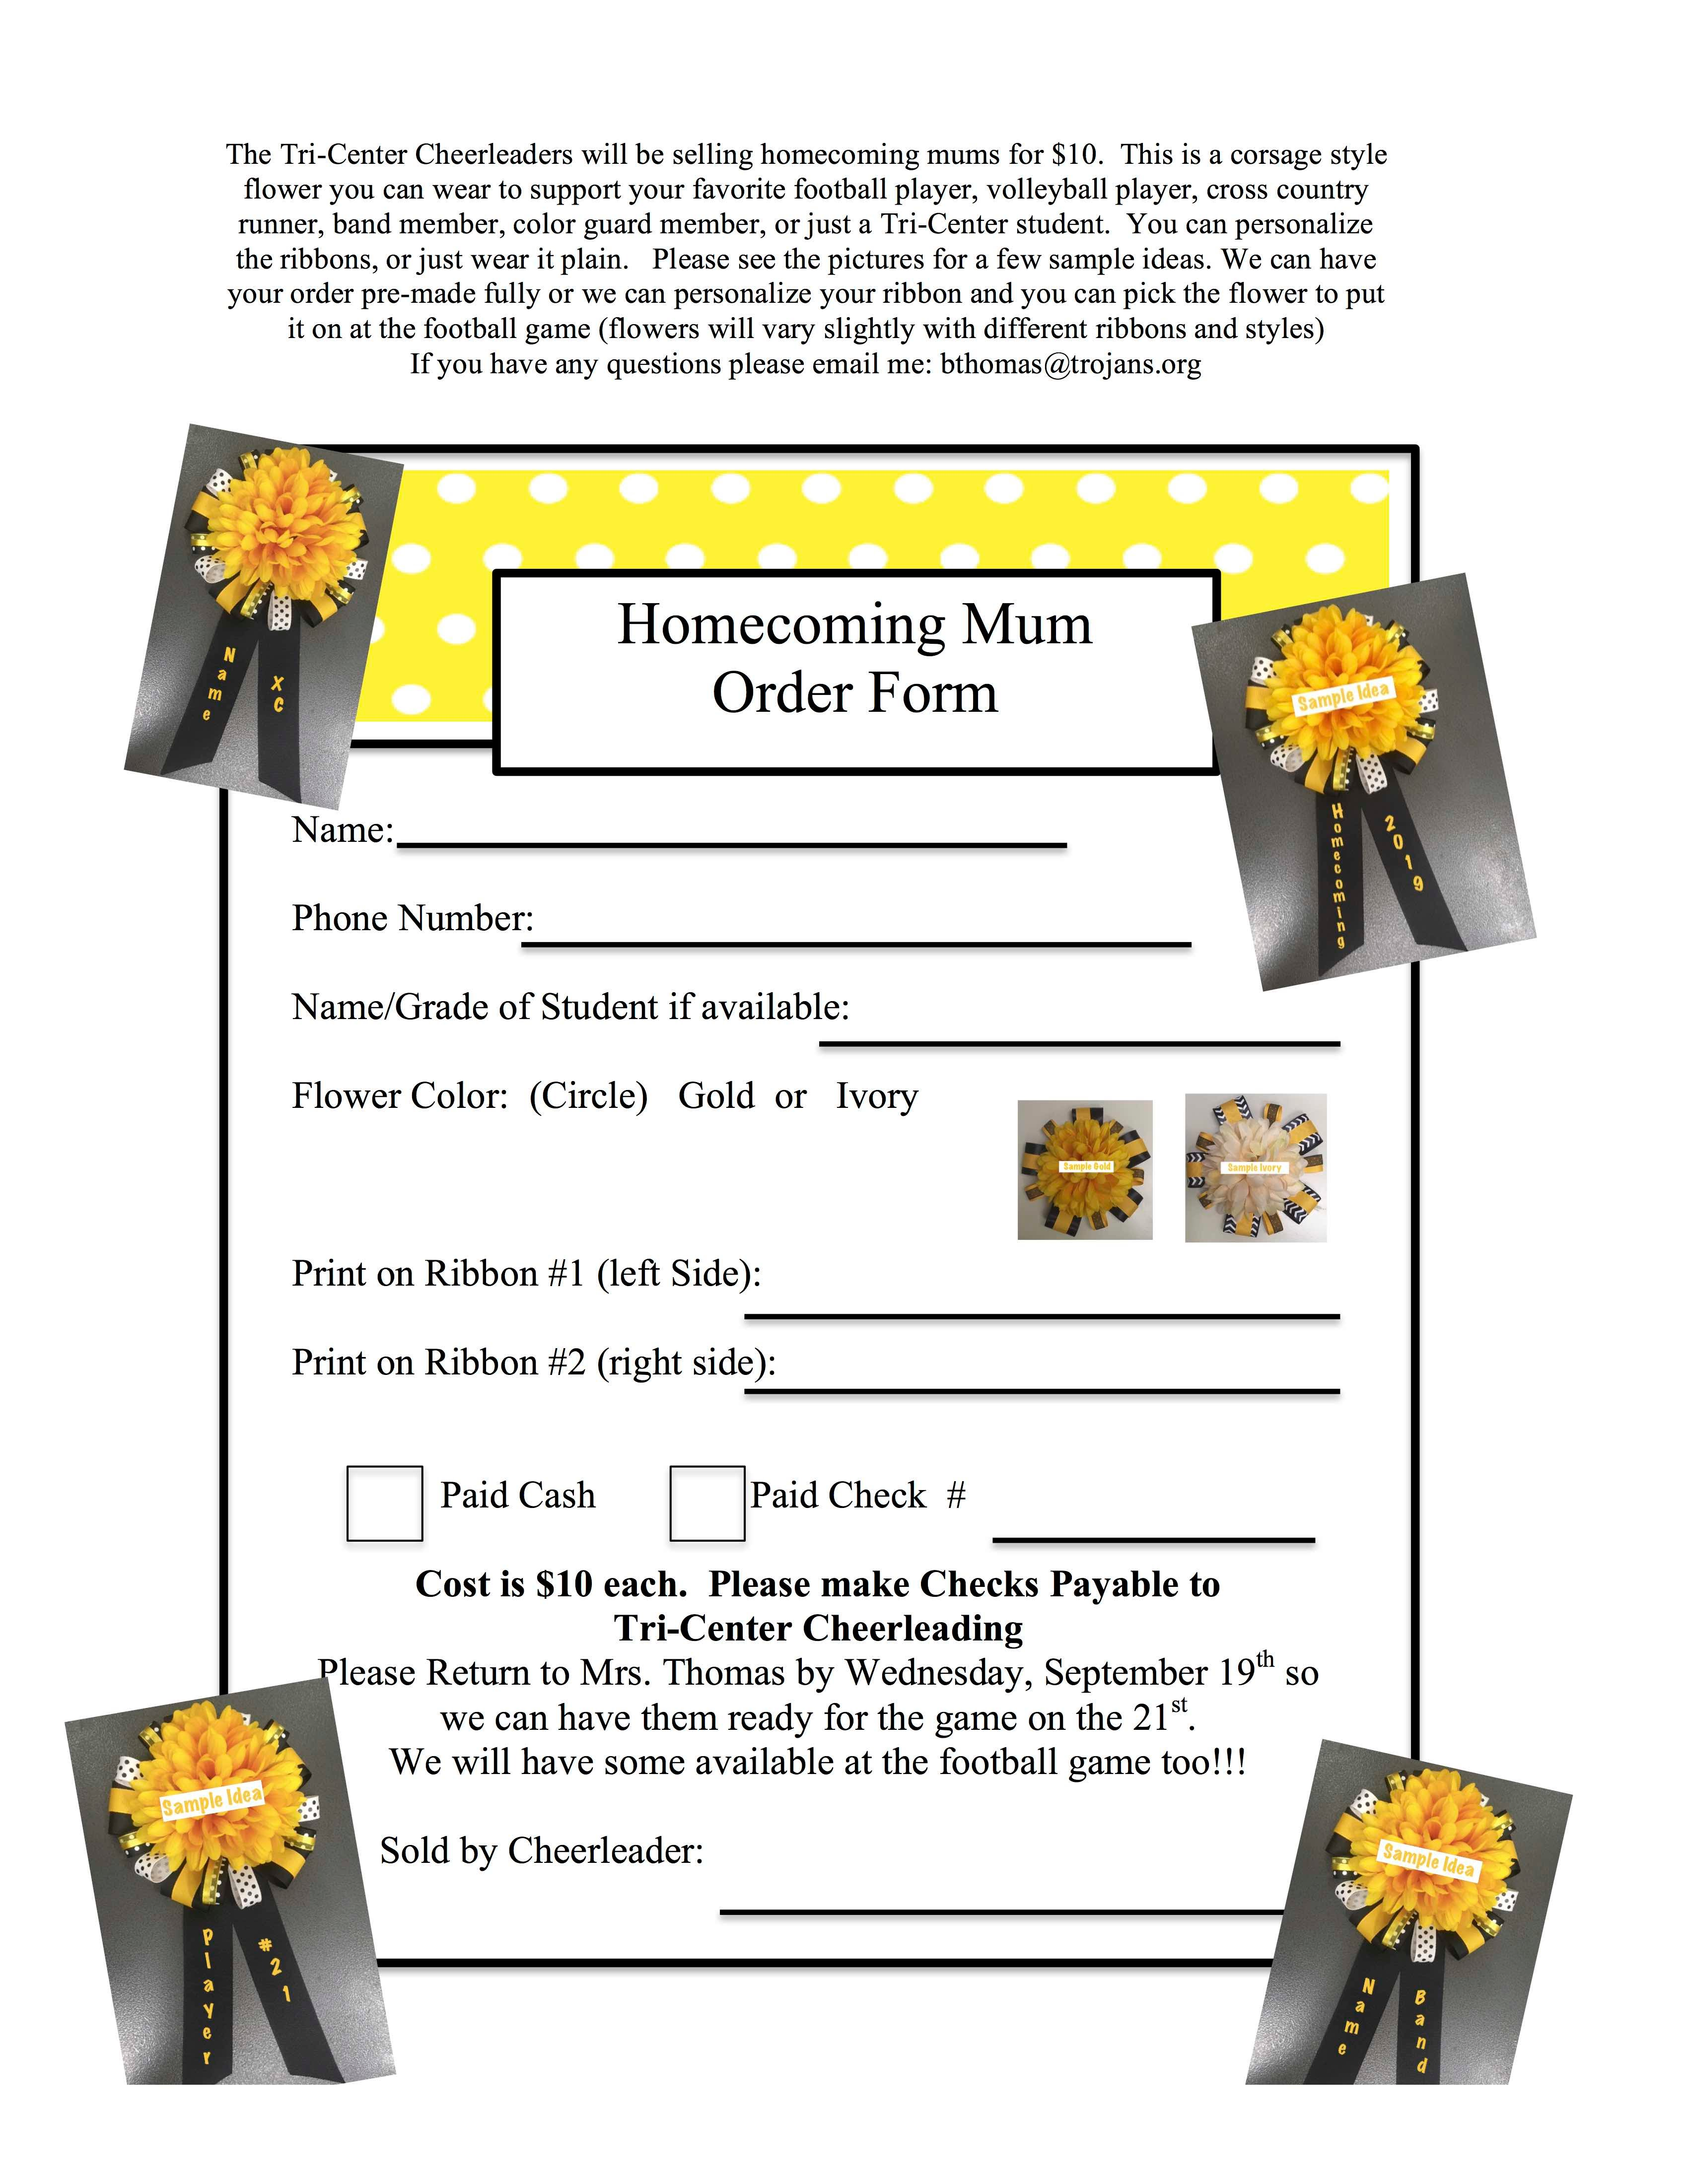 https://sites.google.com/a/tctrojans.org/tc/news-announcements/news/_draft_post/Homecoming%20Mums.pdf